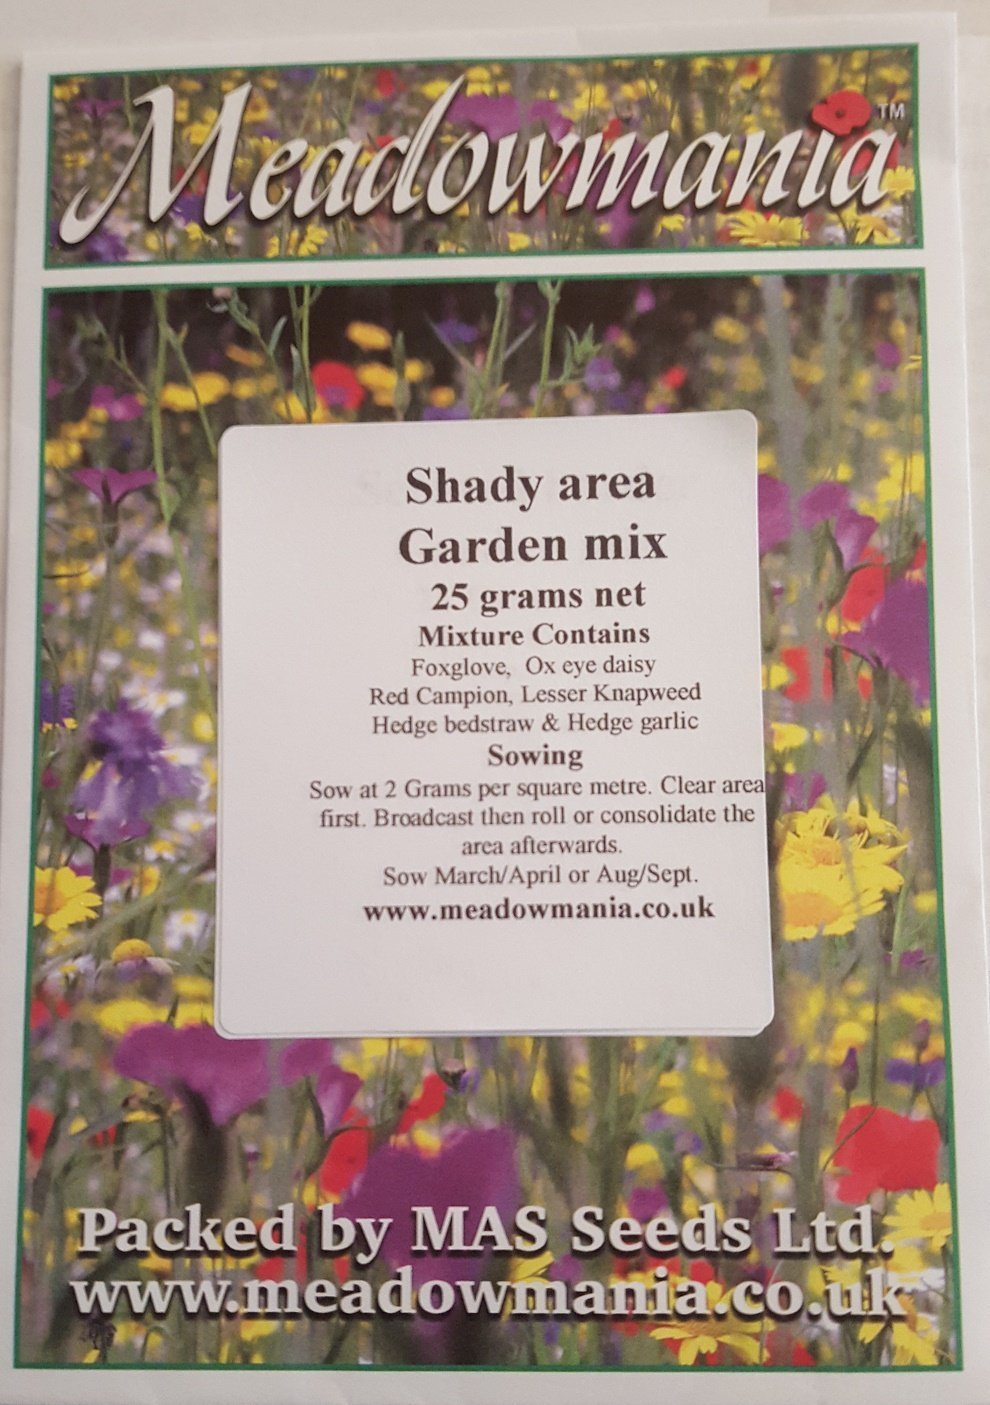 MeadowMania Native UK Seed cover up to 30 square metres 100/% Wildflower seed shaded//woodland areas 45 grams